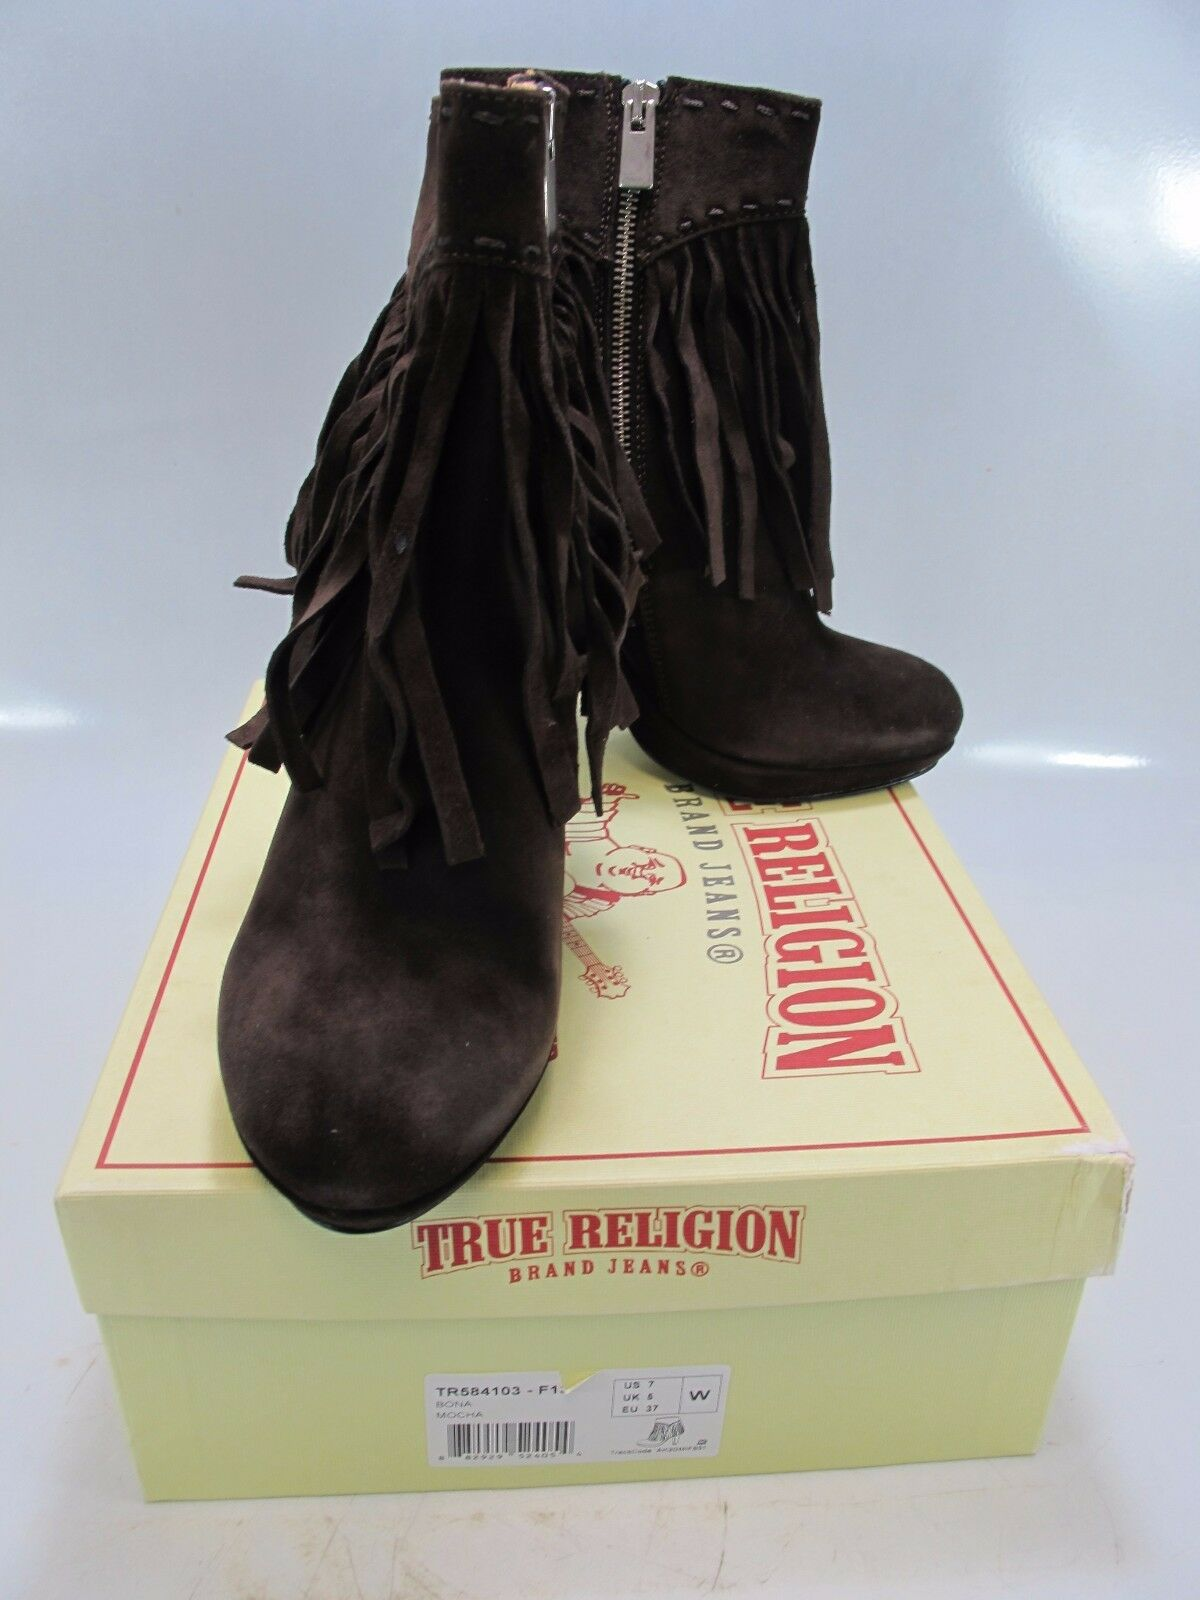 TRUE RELIGION 7W; Women's BONA Mocha Fringe Heeled Booties US 7W; RELIGION W (TR584103) d63685